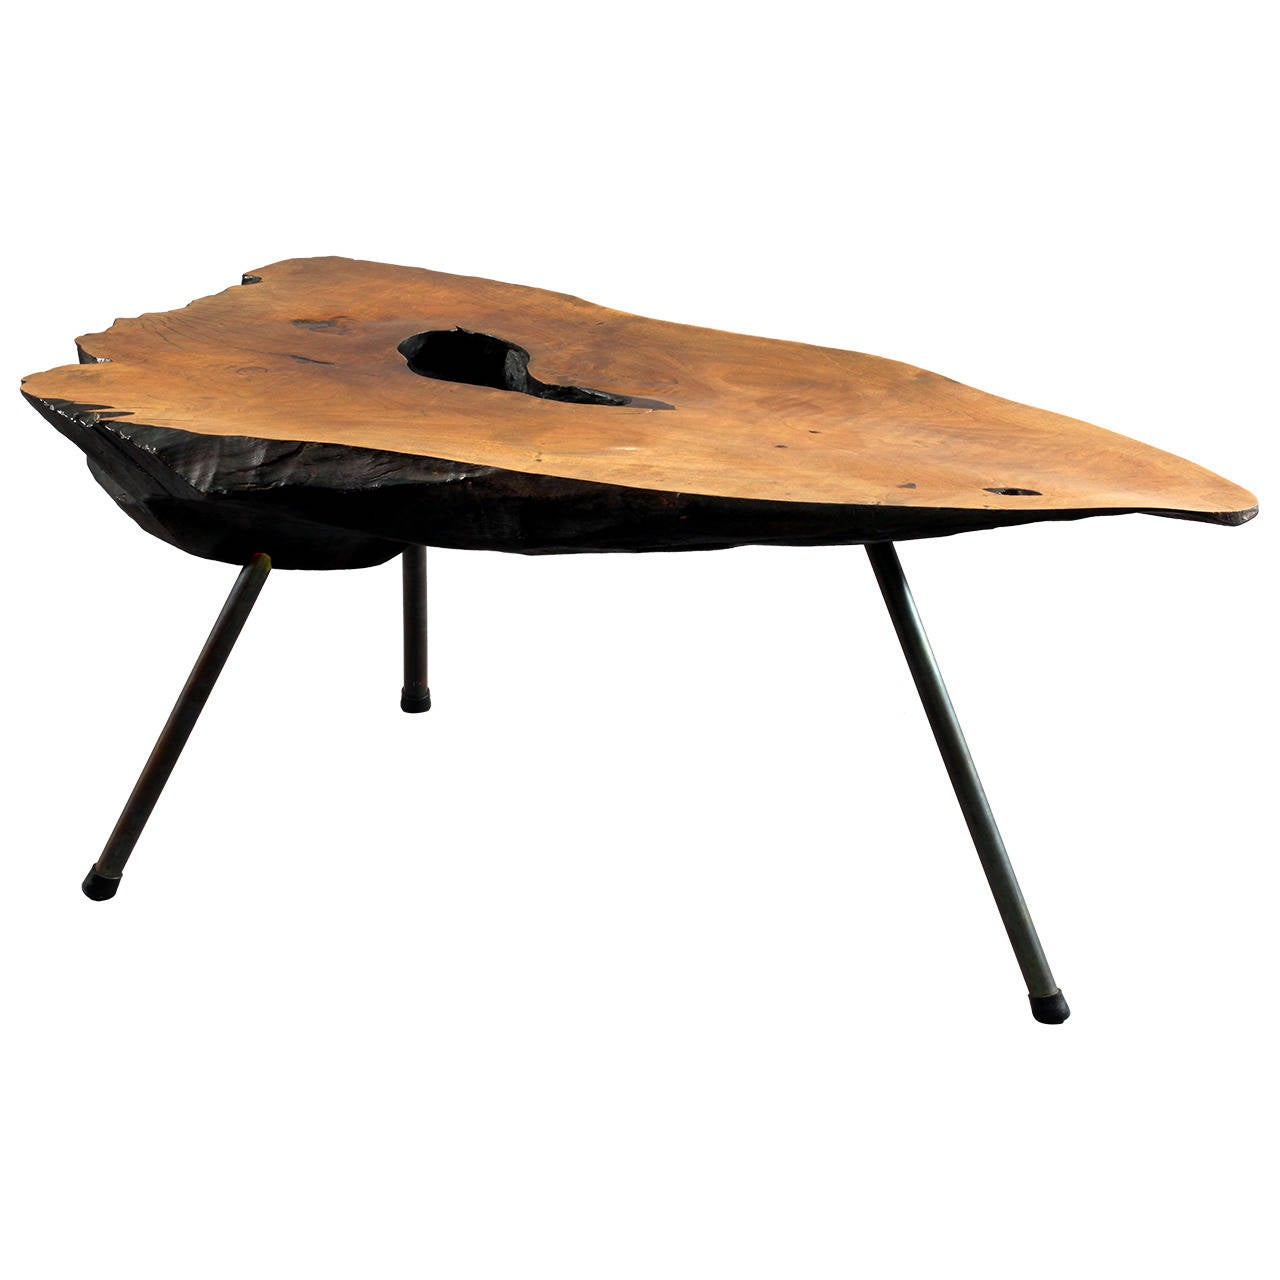 Original Huge Carl Aub Ck Tree Trunk Table Vienna 1950 At